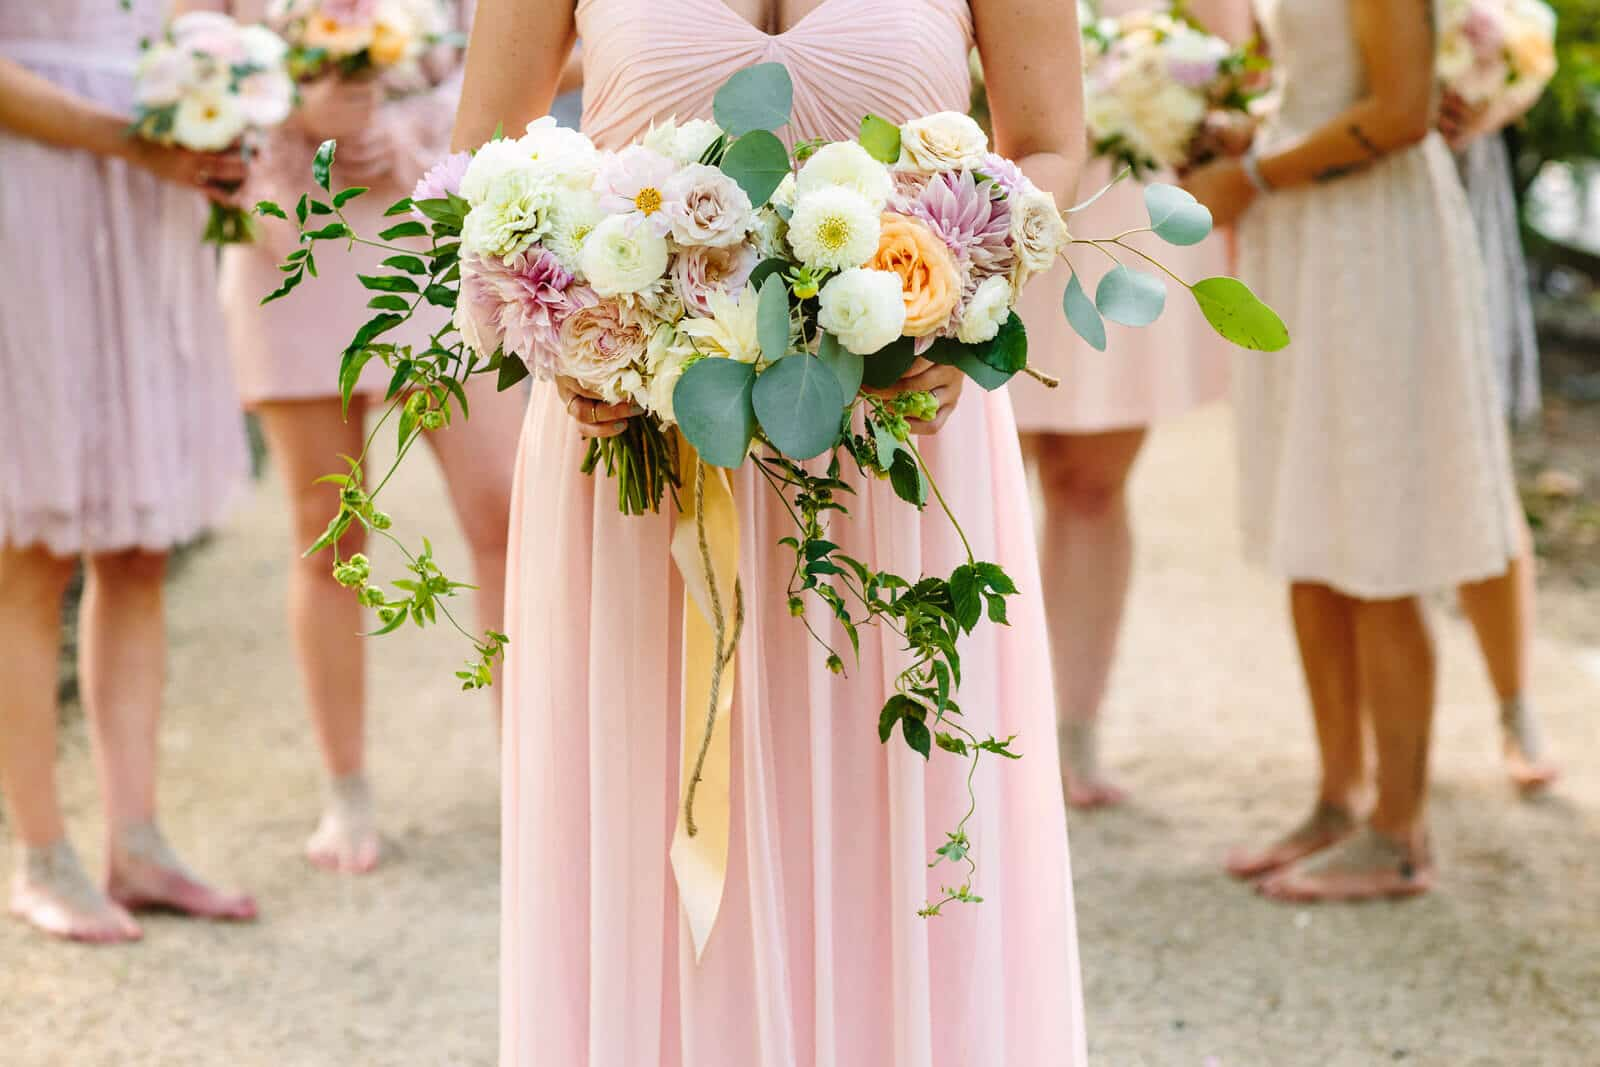 flowers, floral, wedding, jorgensen farms, outdoor wedding, bridal party, bridesmainds, stylish, modern, love, cool